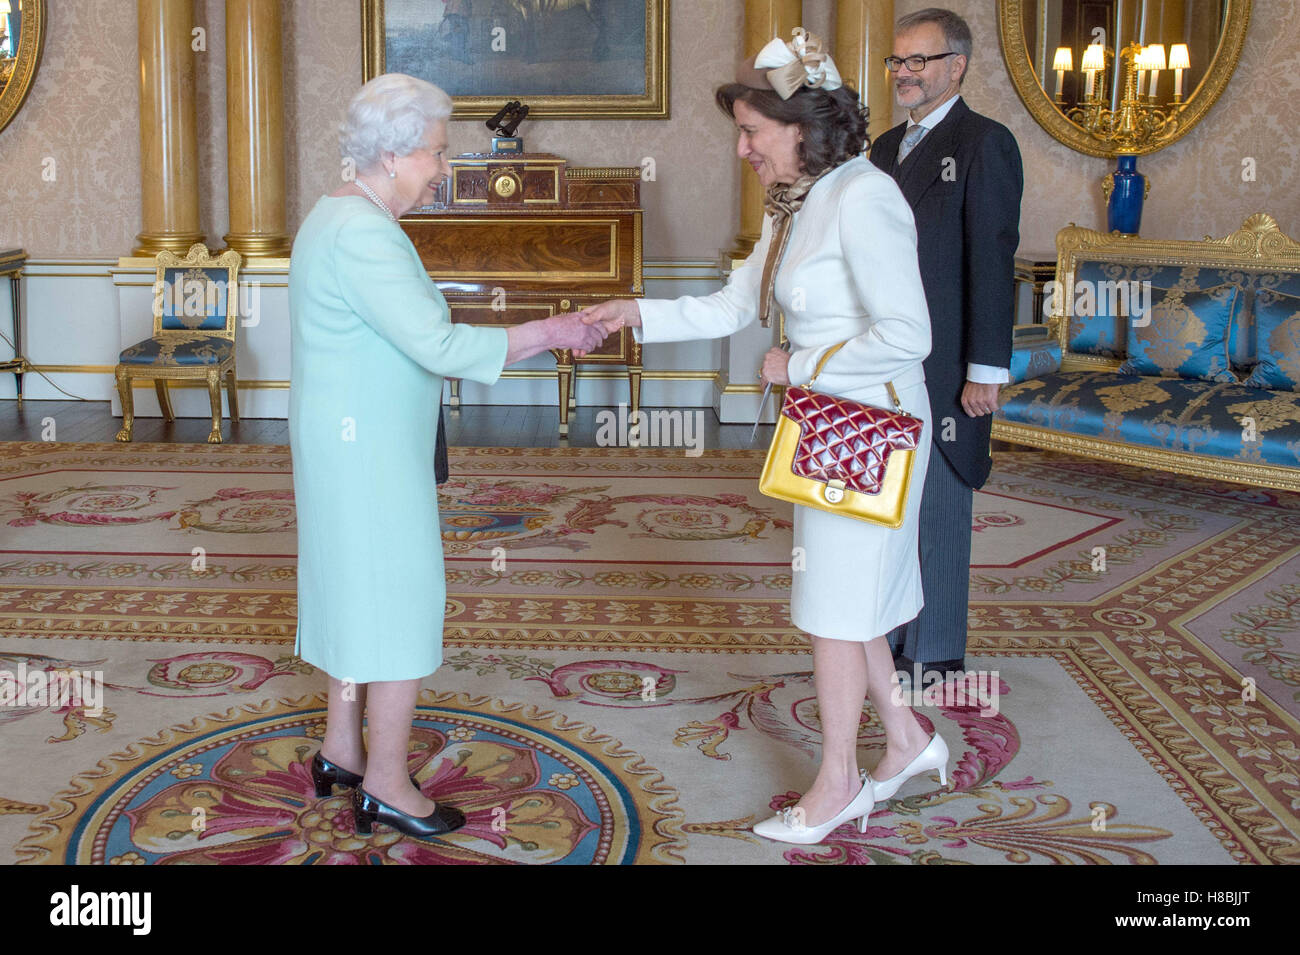 Her Excellency Ms. Elisabeth Hayek-Weinmann accompanied by her husband Wolfgang Weinmann is received in audience - Stock Image